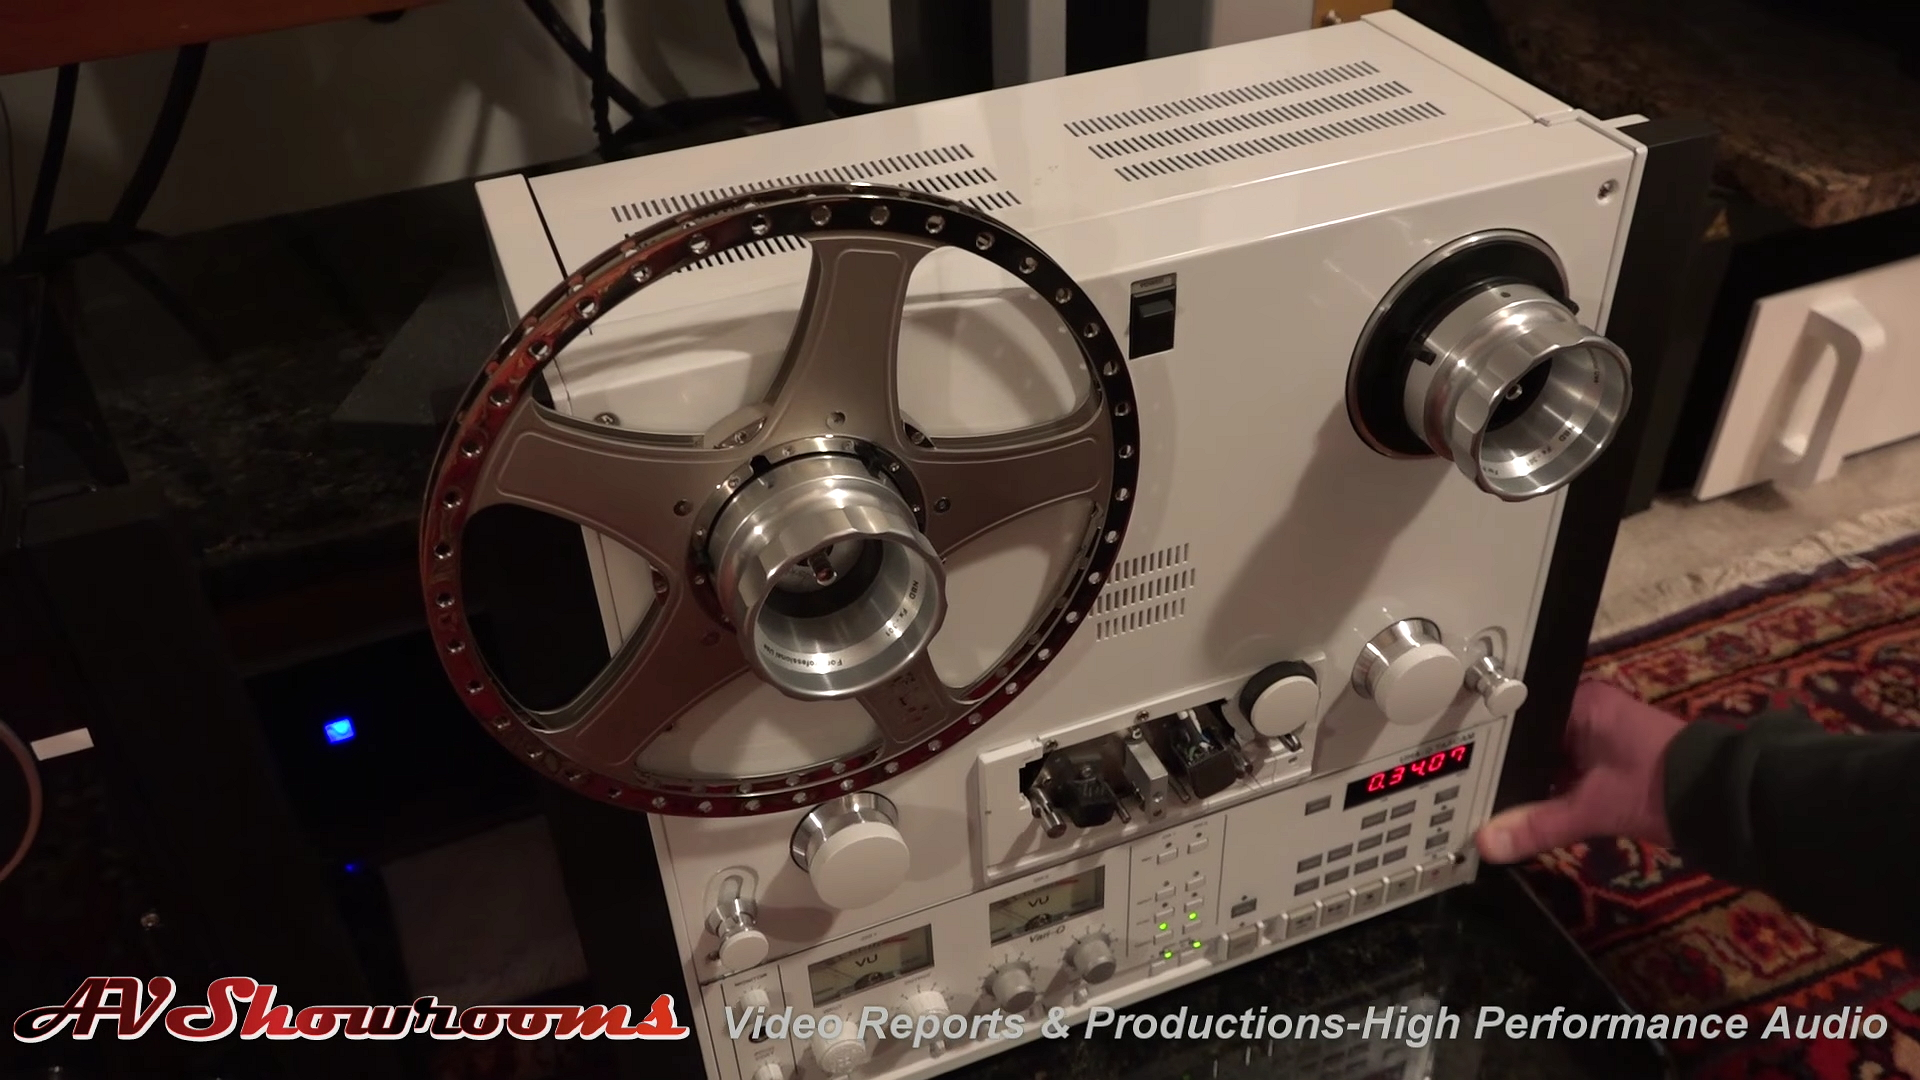 World's Greatest Audio Systems